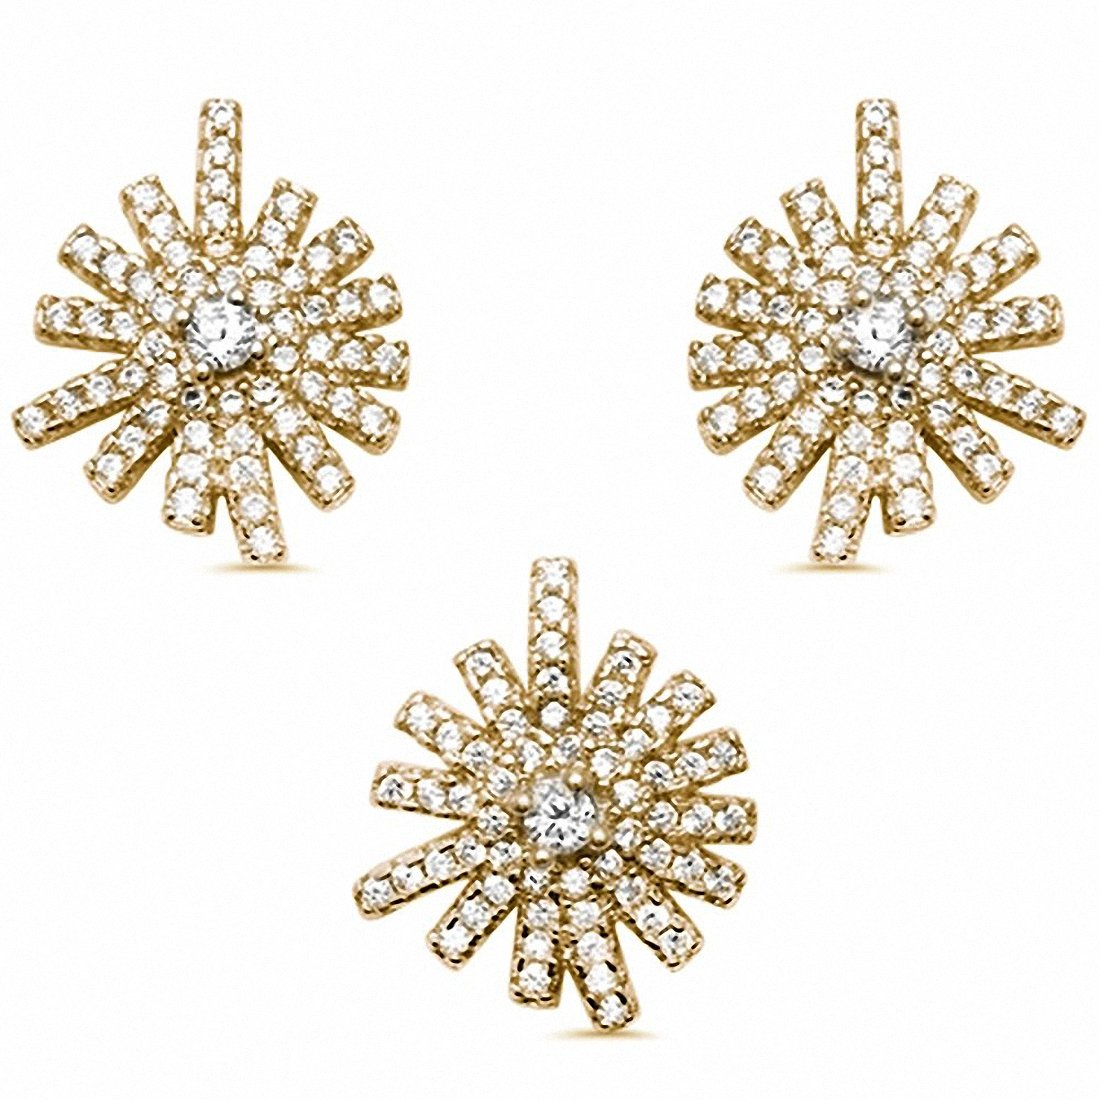 Starburst Jewelry Set Round Cubic Zirconia 925 Sterling Silver Pendant Earring Choose Color